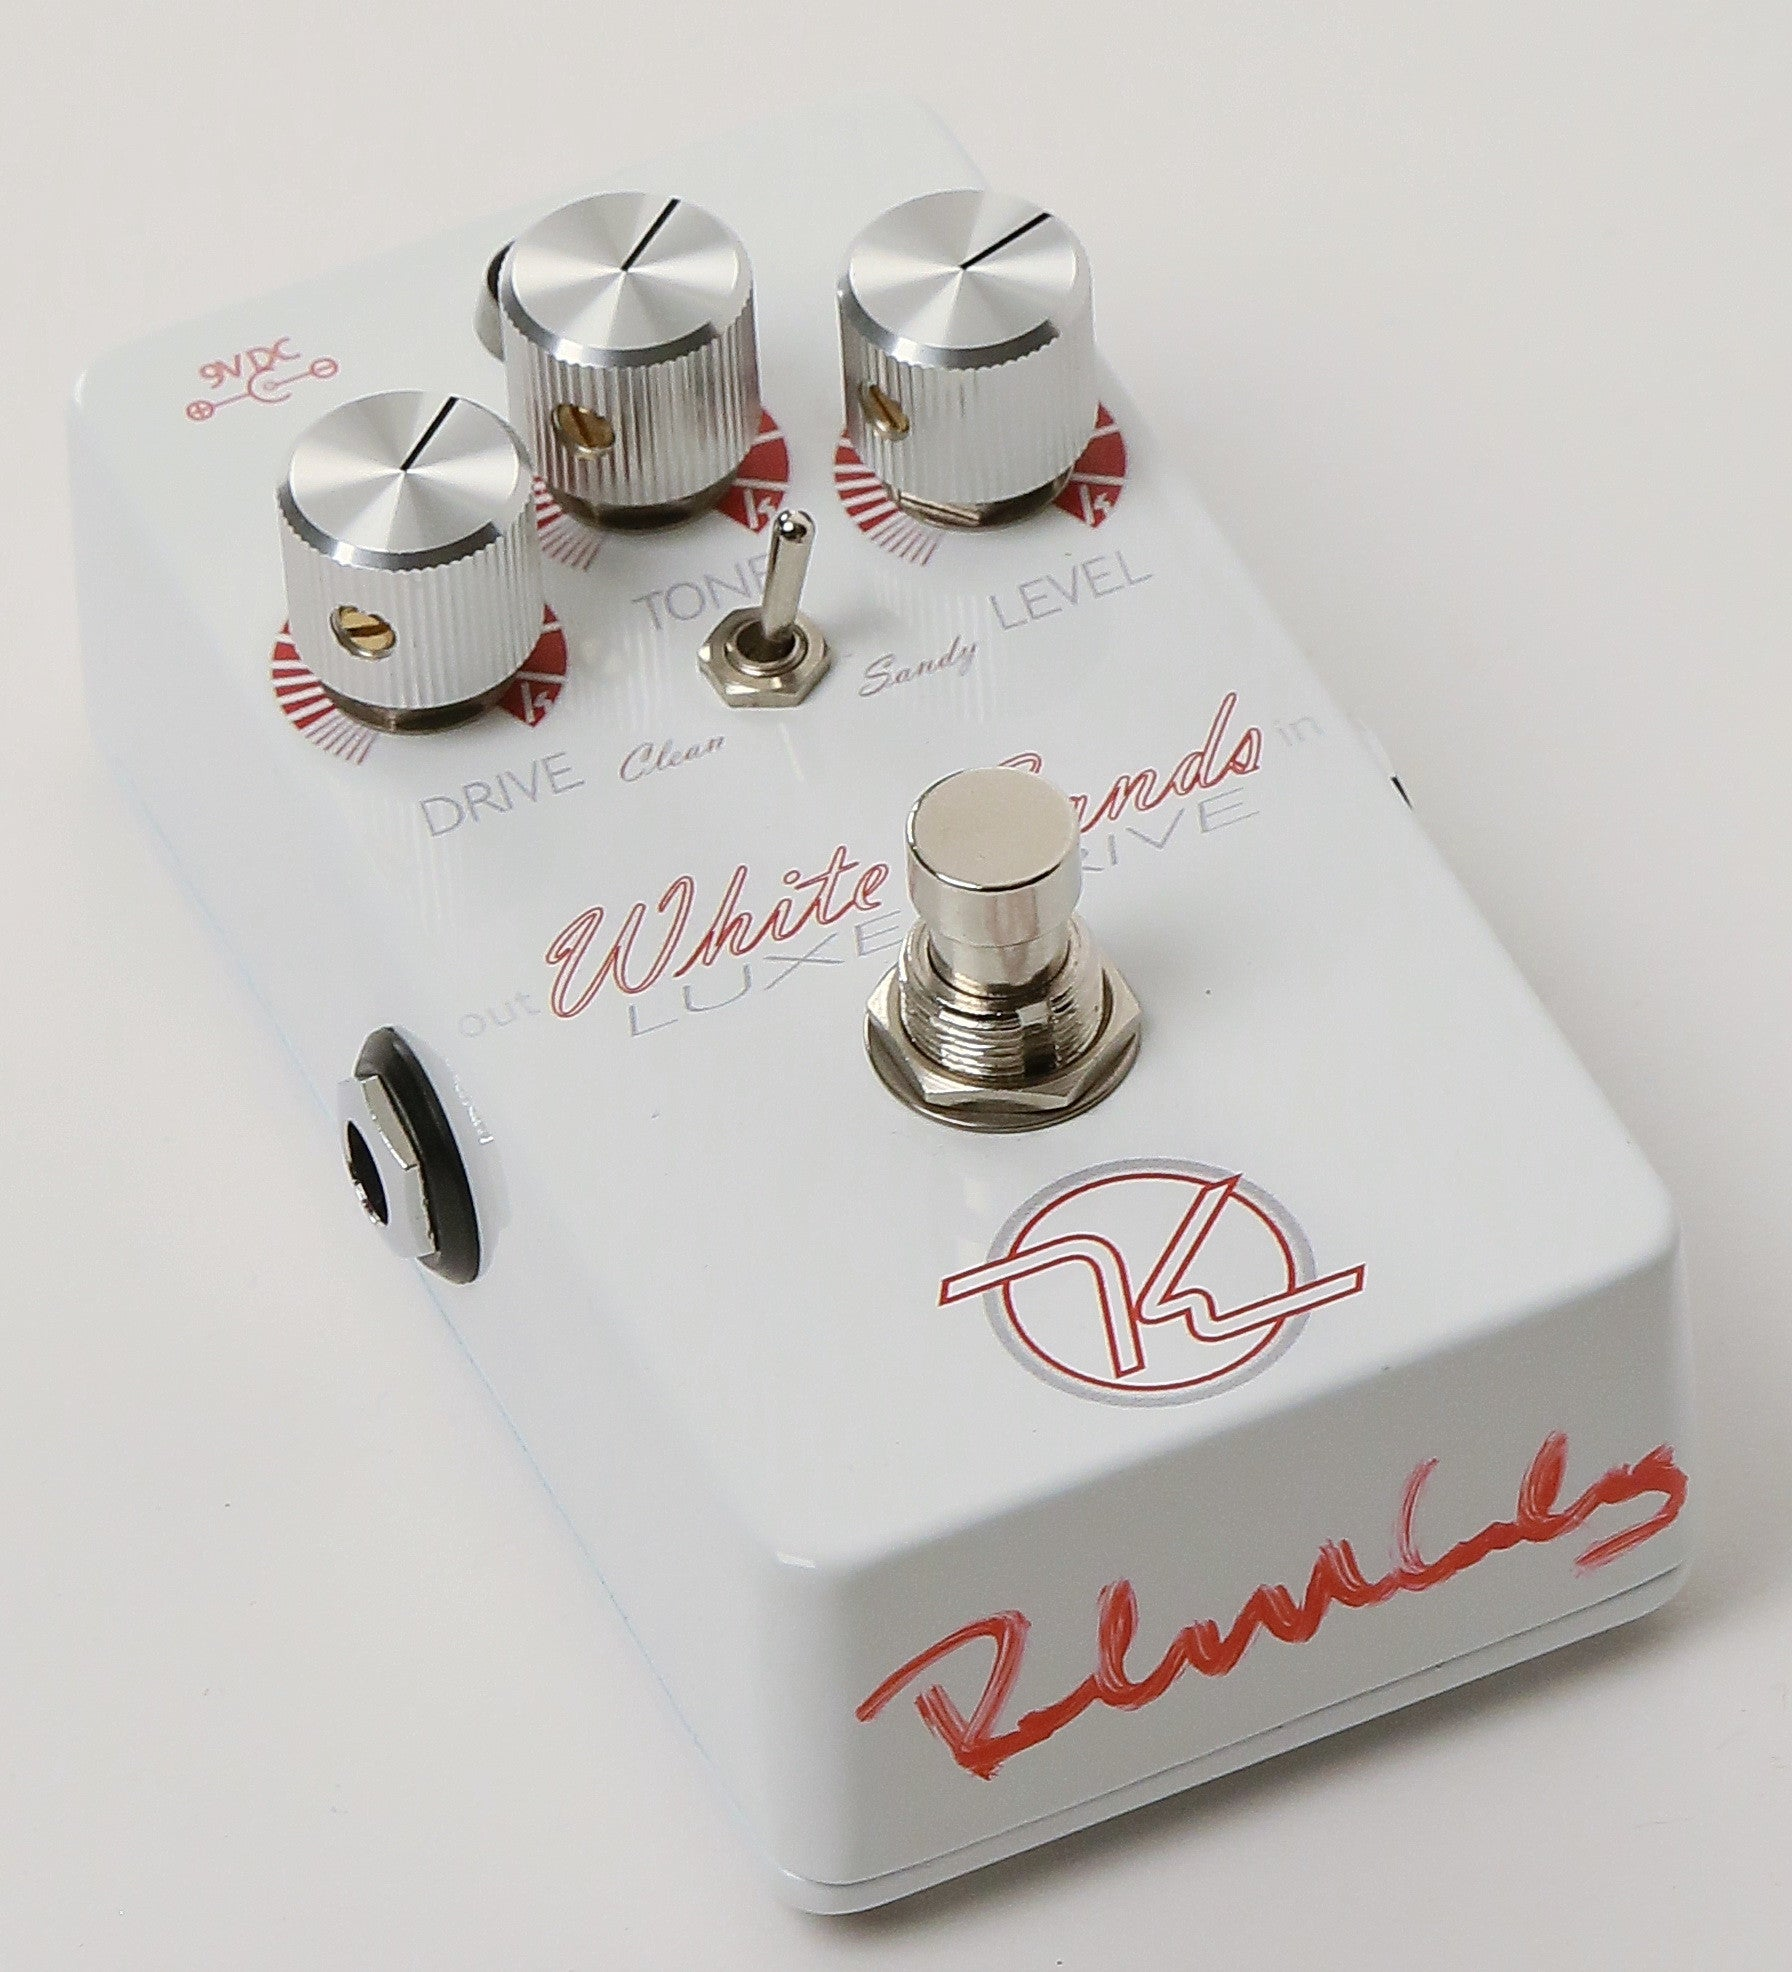 Keeley White Sands Overdrive